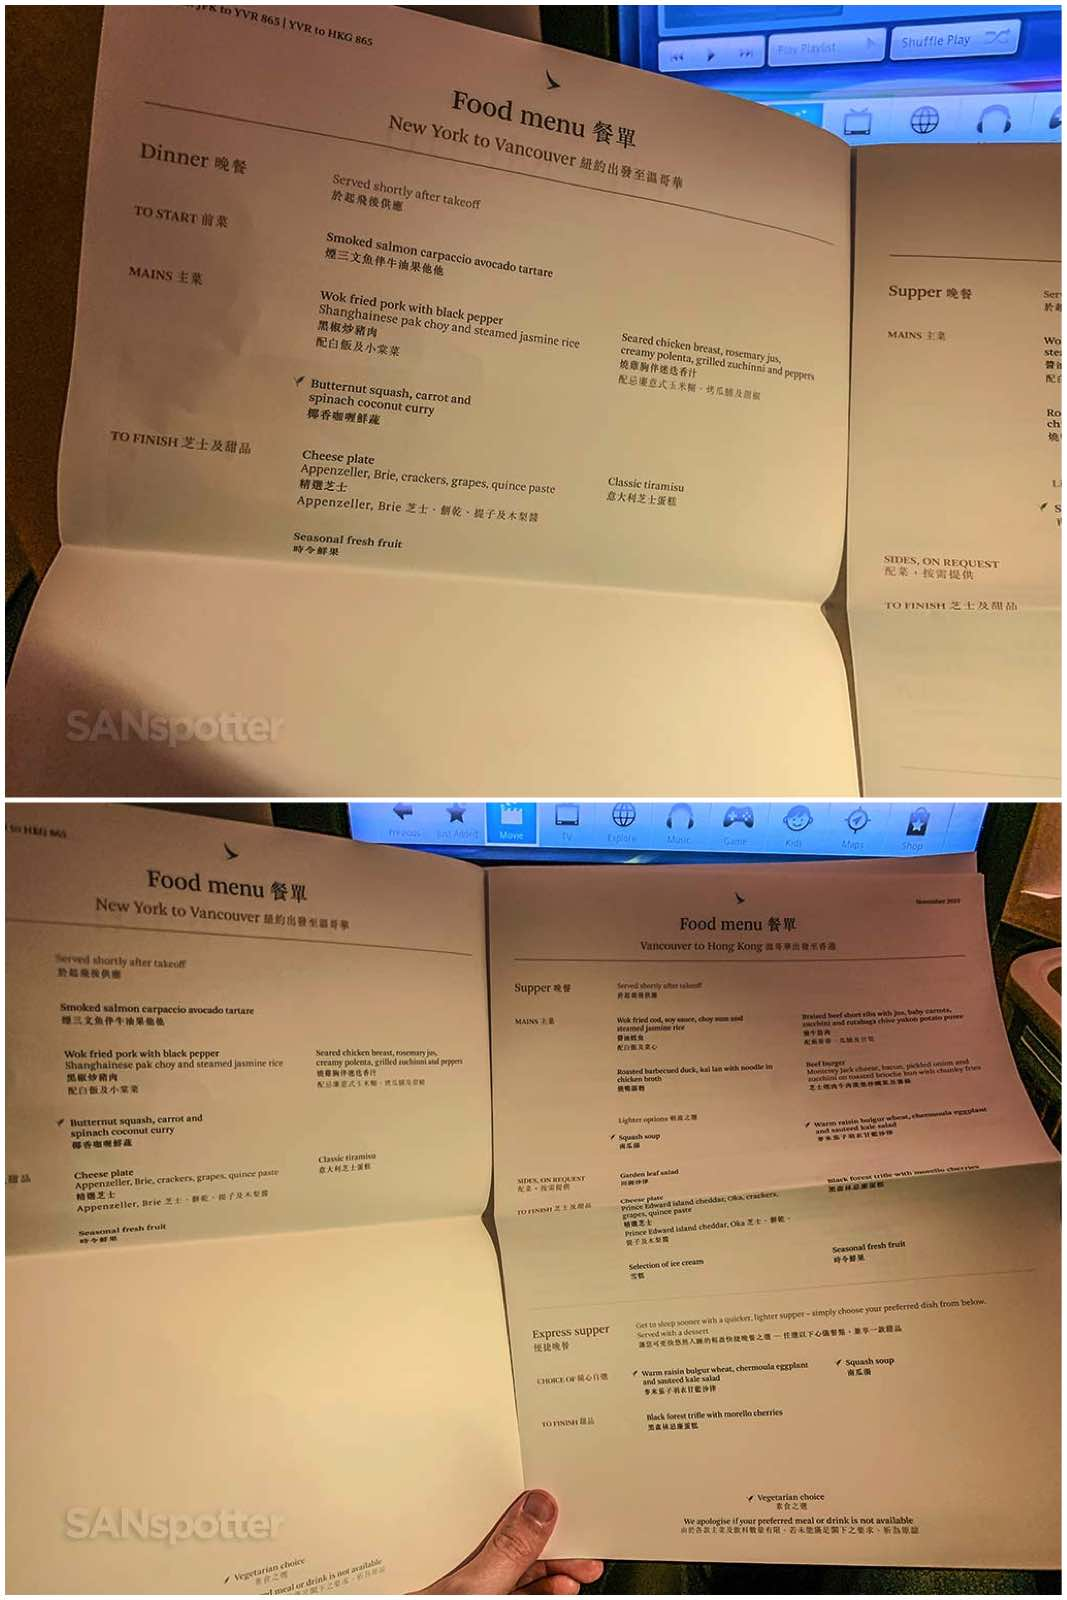 Cathay Pacific business class menu options